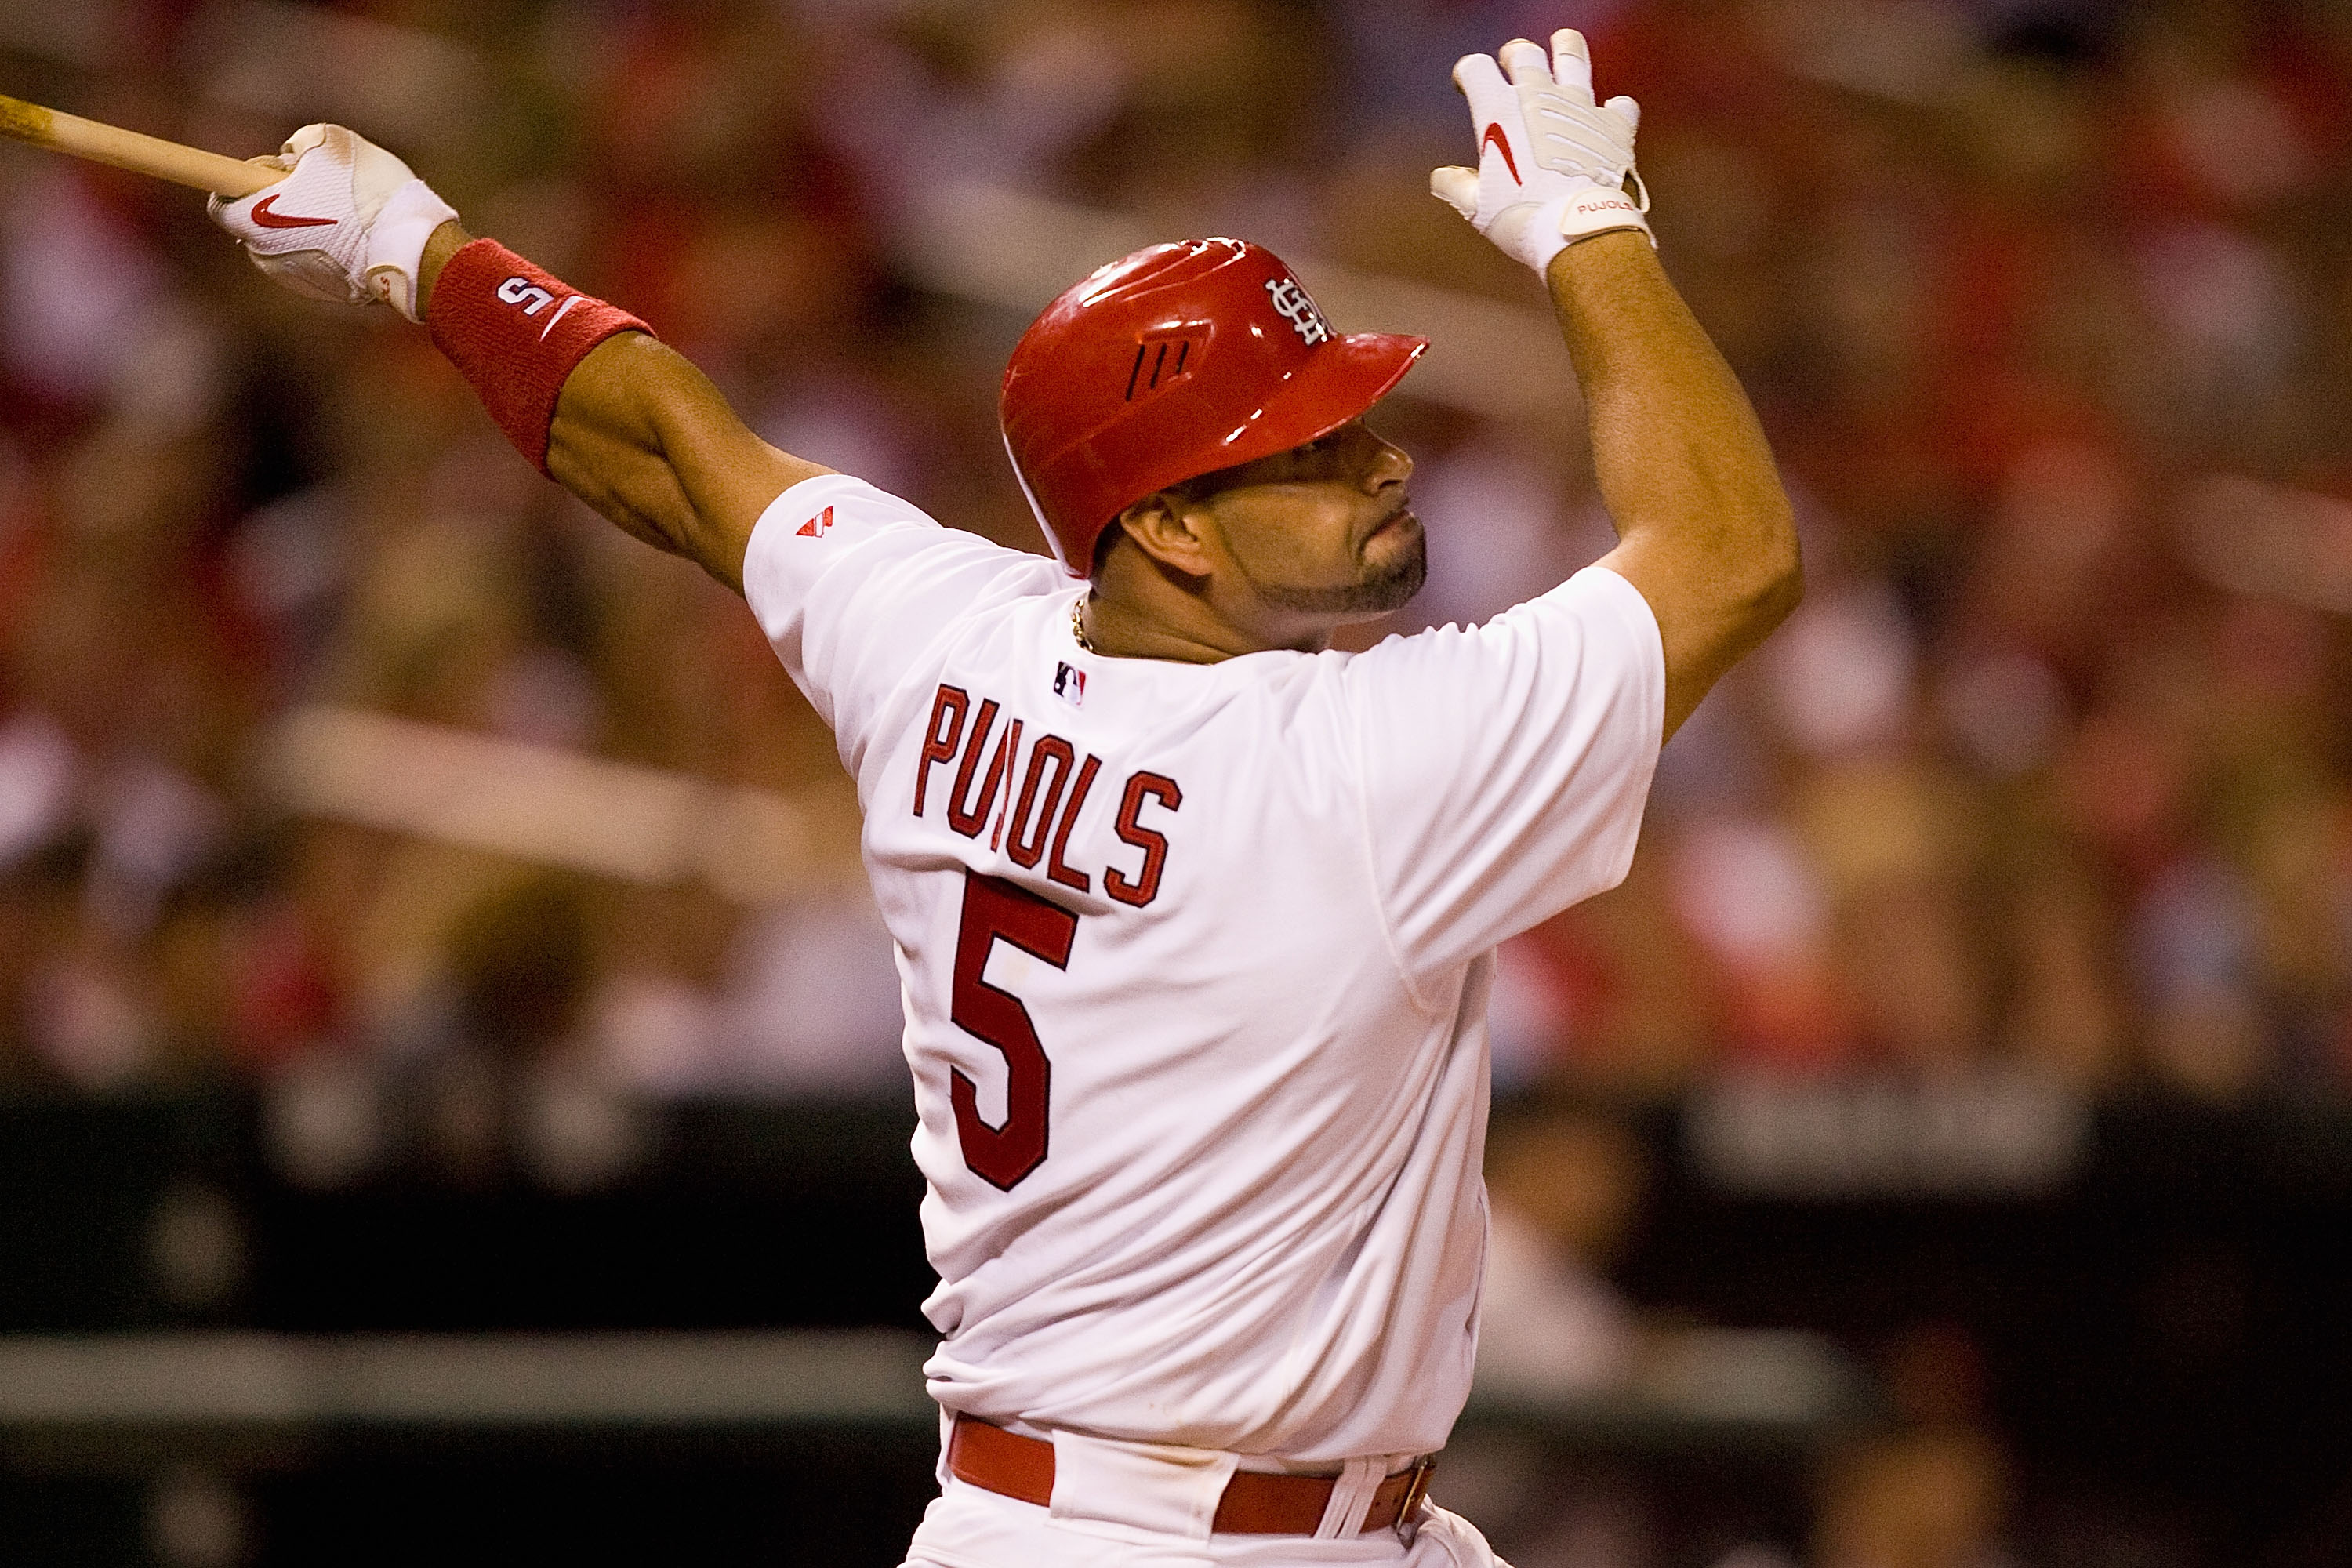 ST. LOUIS - AUGUST 21: Albert Pujols #5 of the St. Louis Cardinals bats against the San Francisco Giants at Busch Stadium on August 21, 2010 in St. Louis, Missouri.  (Photo by Dilip Vishwanat/Getty Images)